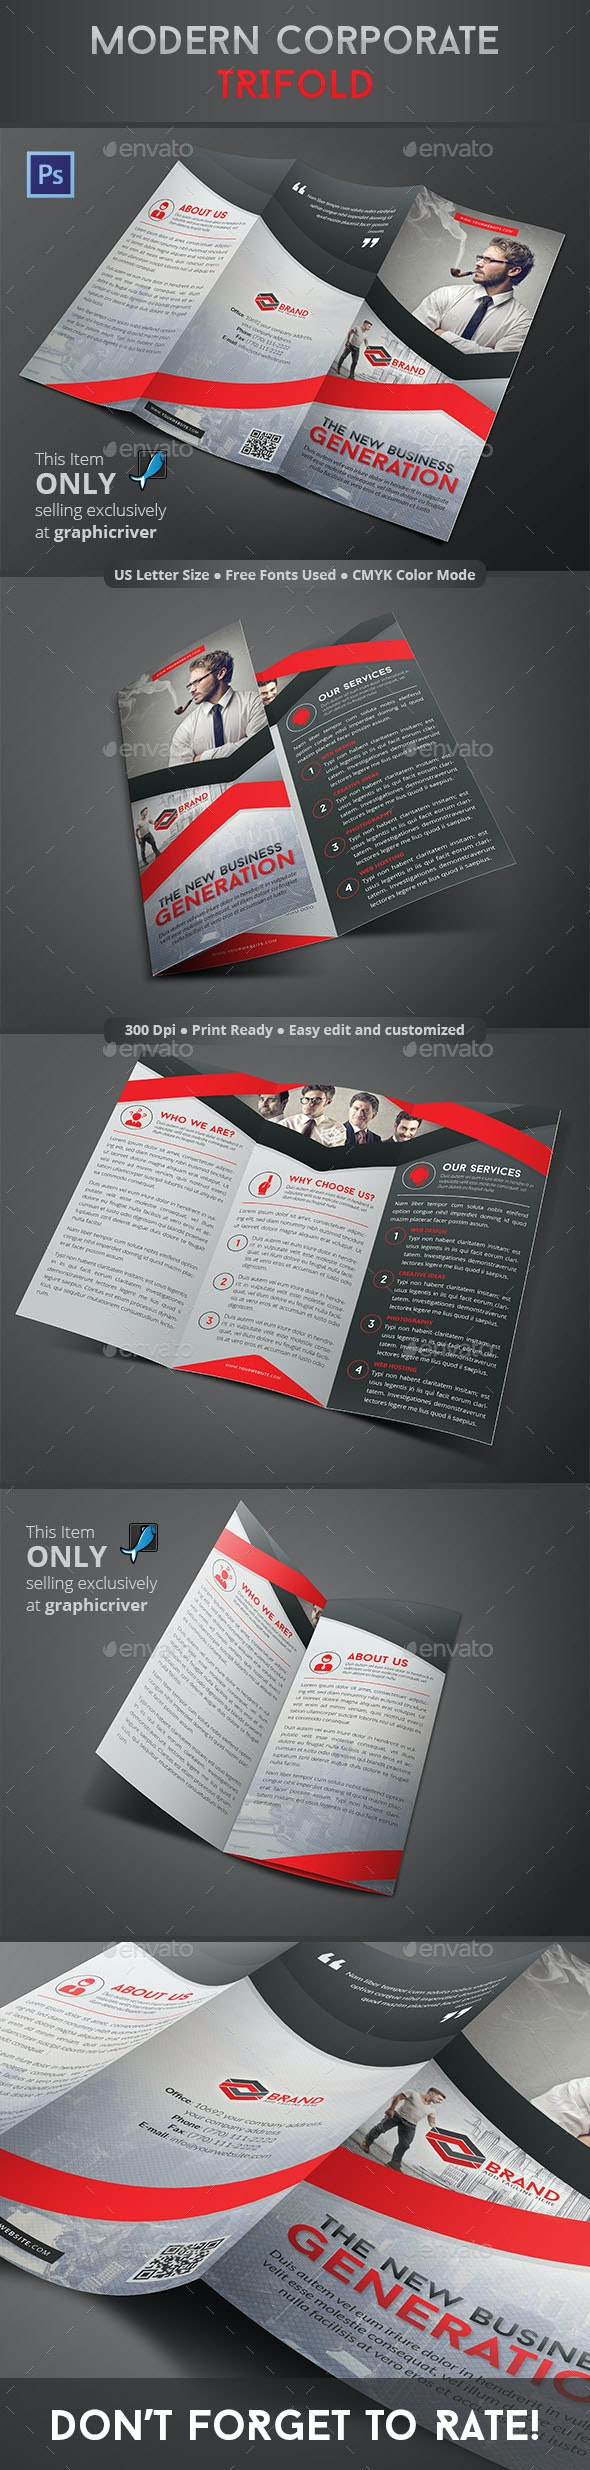 Modern Corporate Trifold - Corporate Brochures